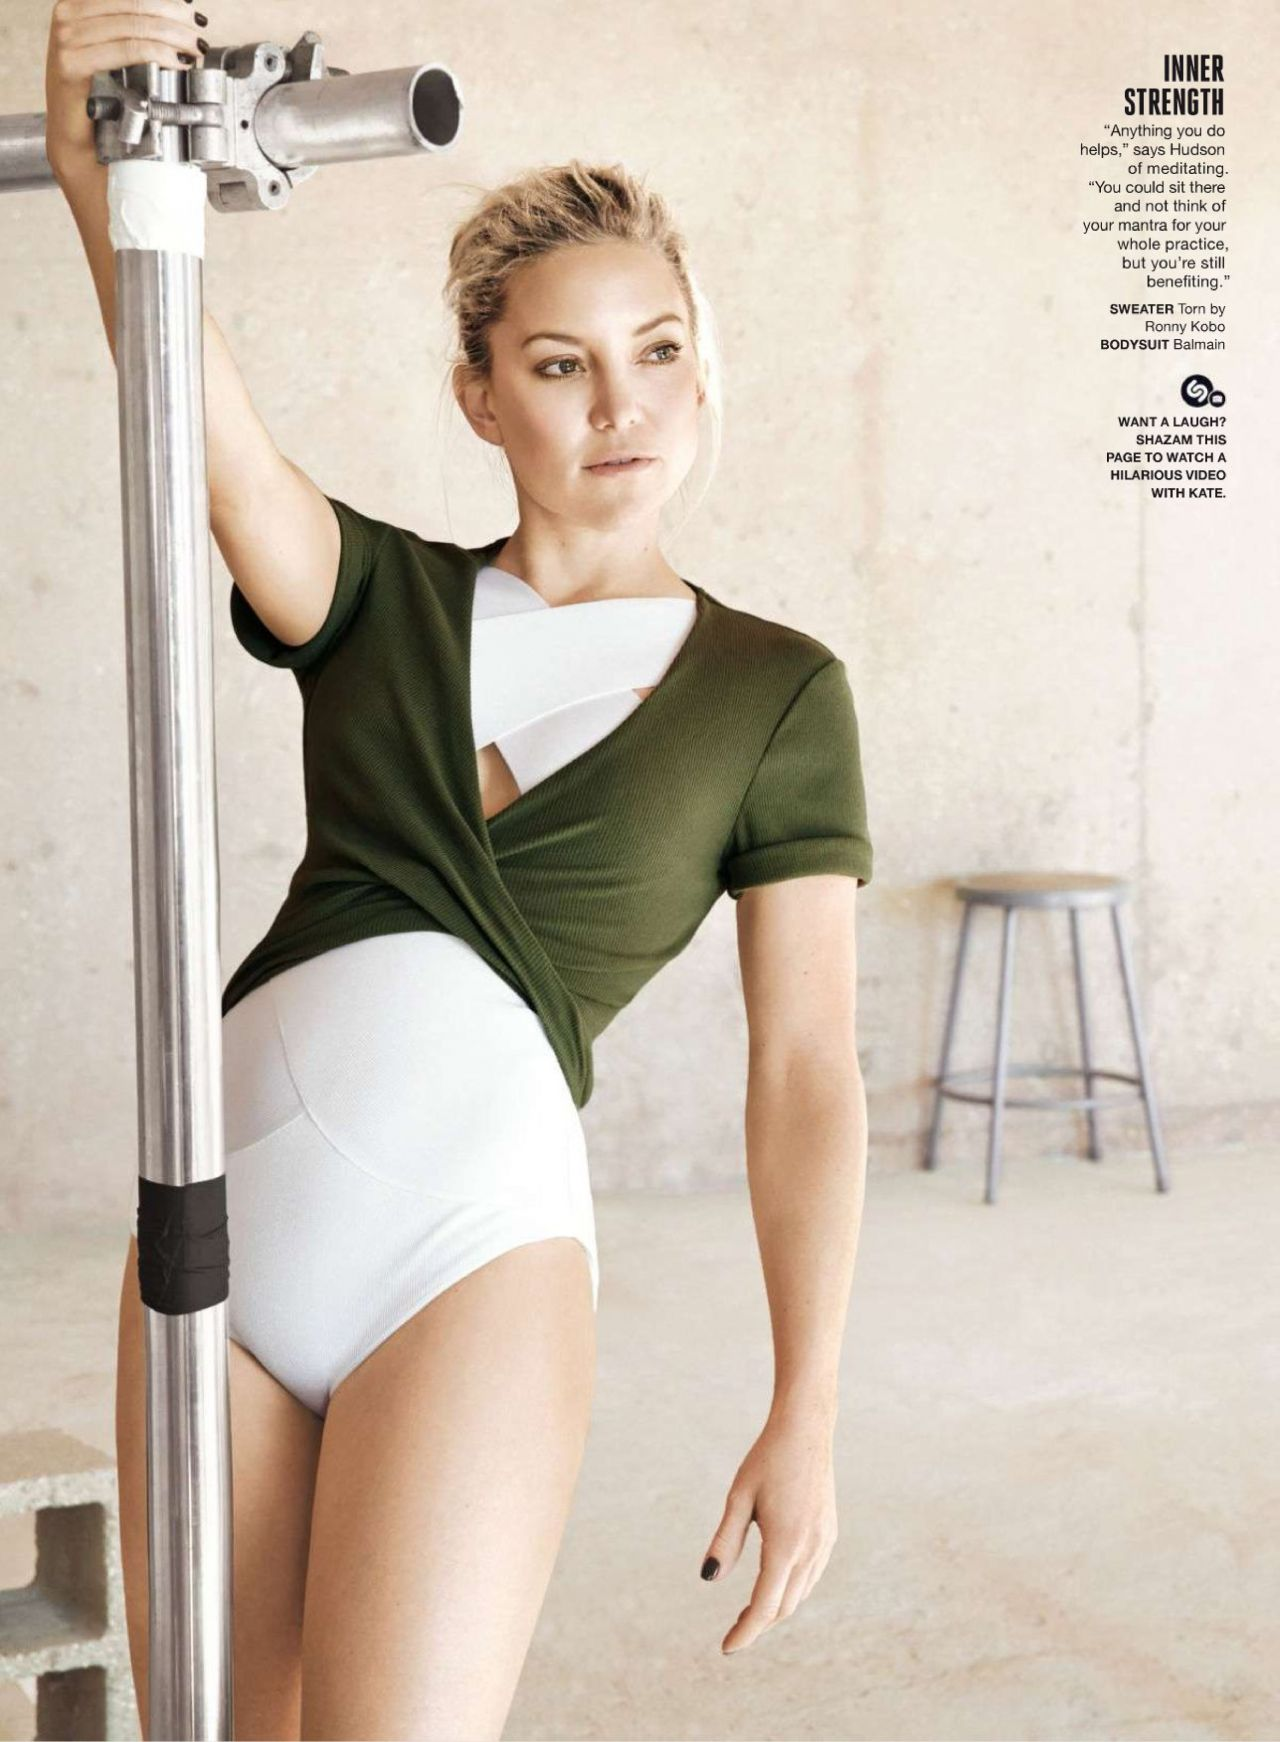 Kate Hudson Self Magazine March 2016 Issue And Pics